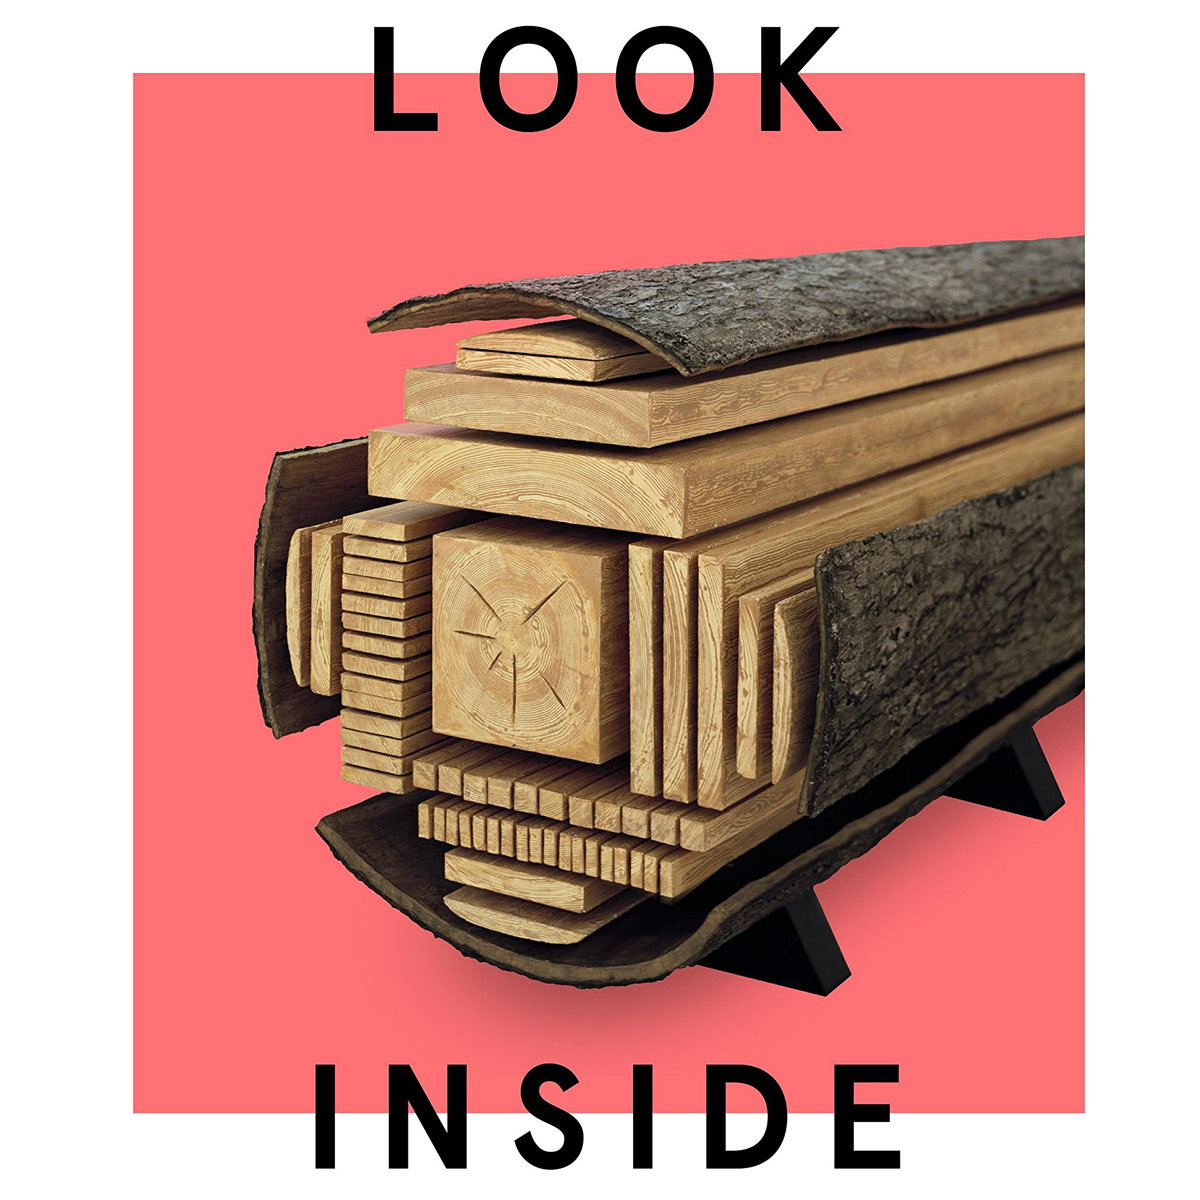 Look Inside - Cutaway Illustrations and Visual Storytelling